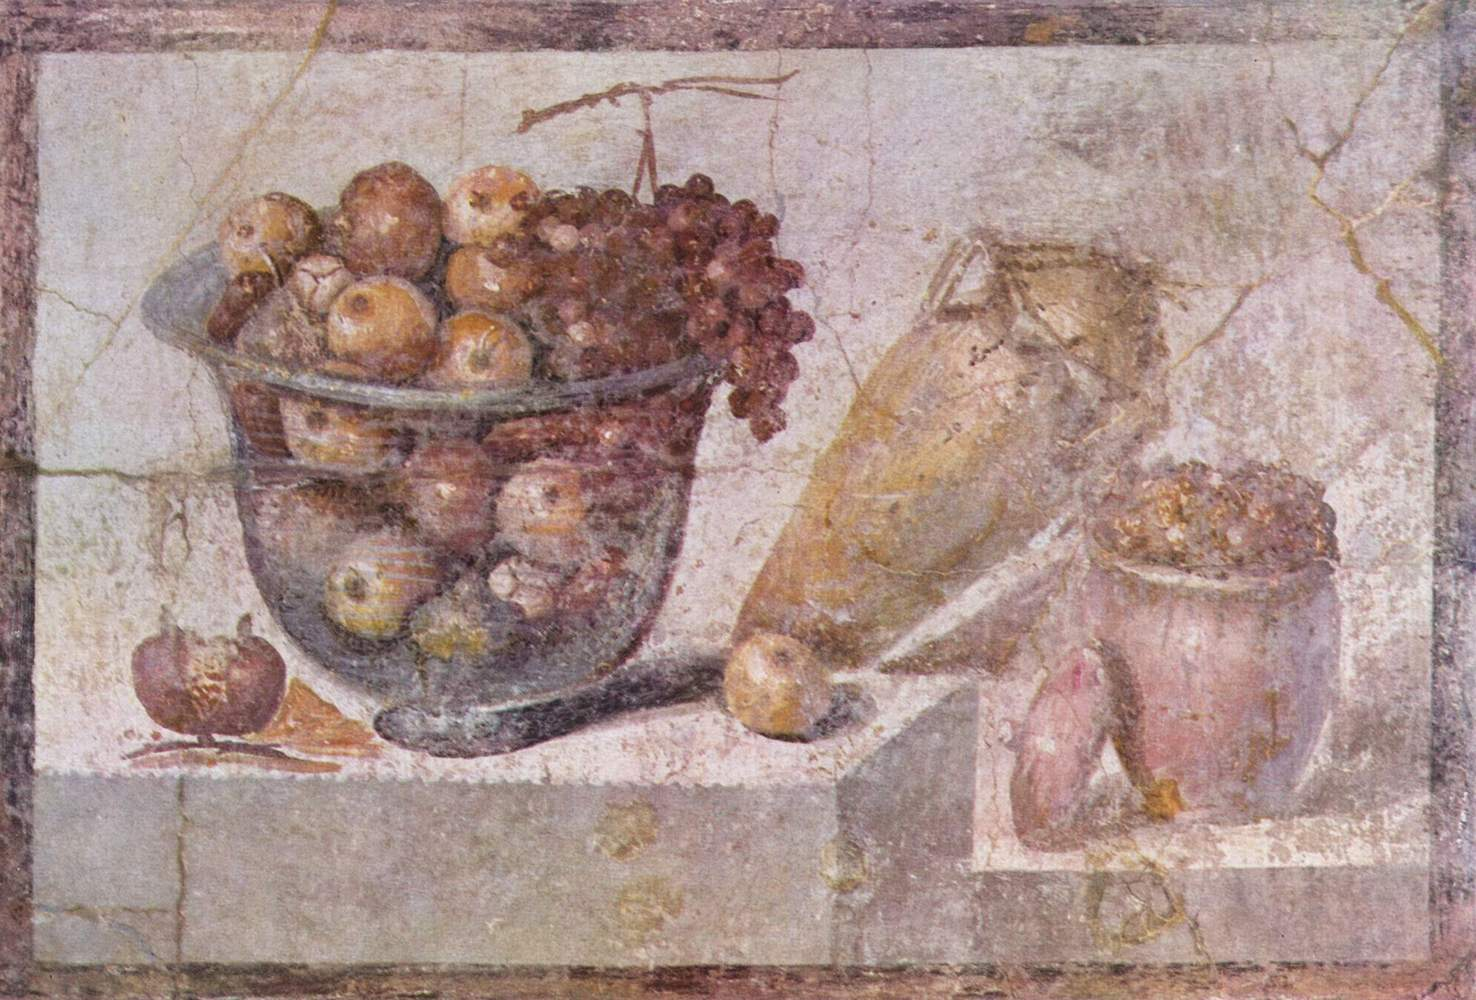 Ancient Roman Food